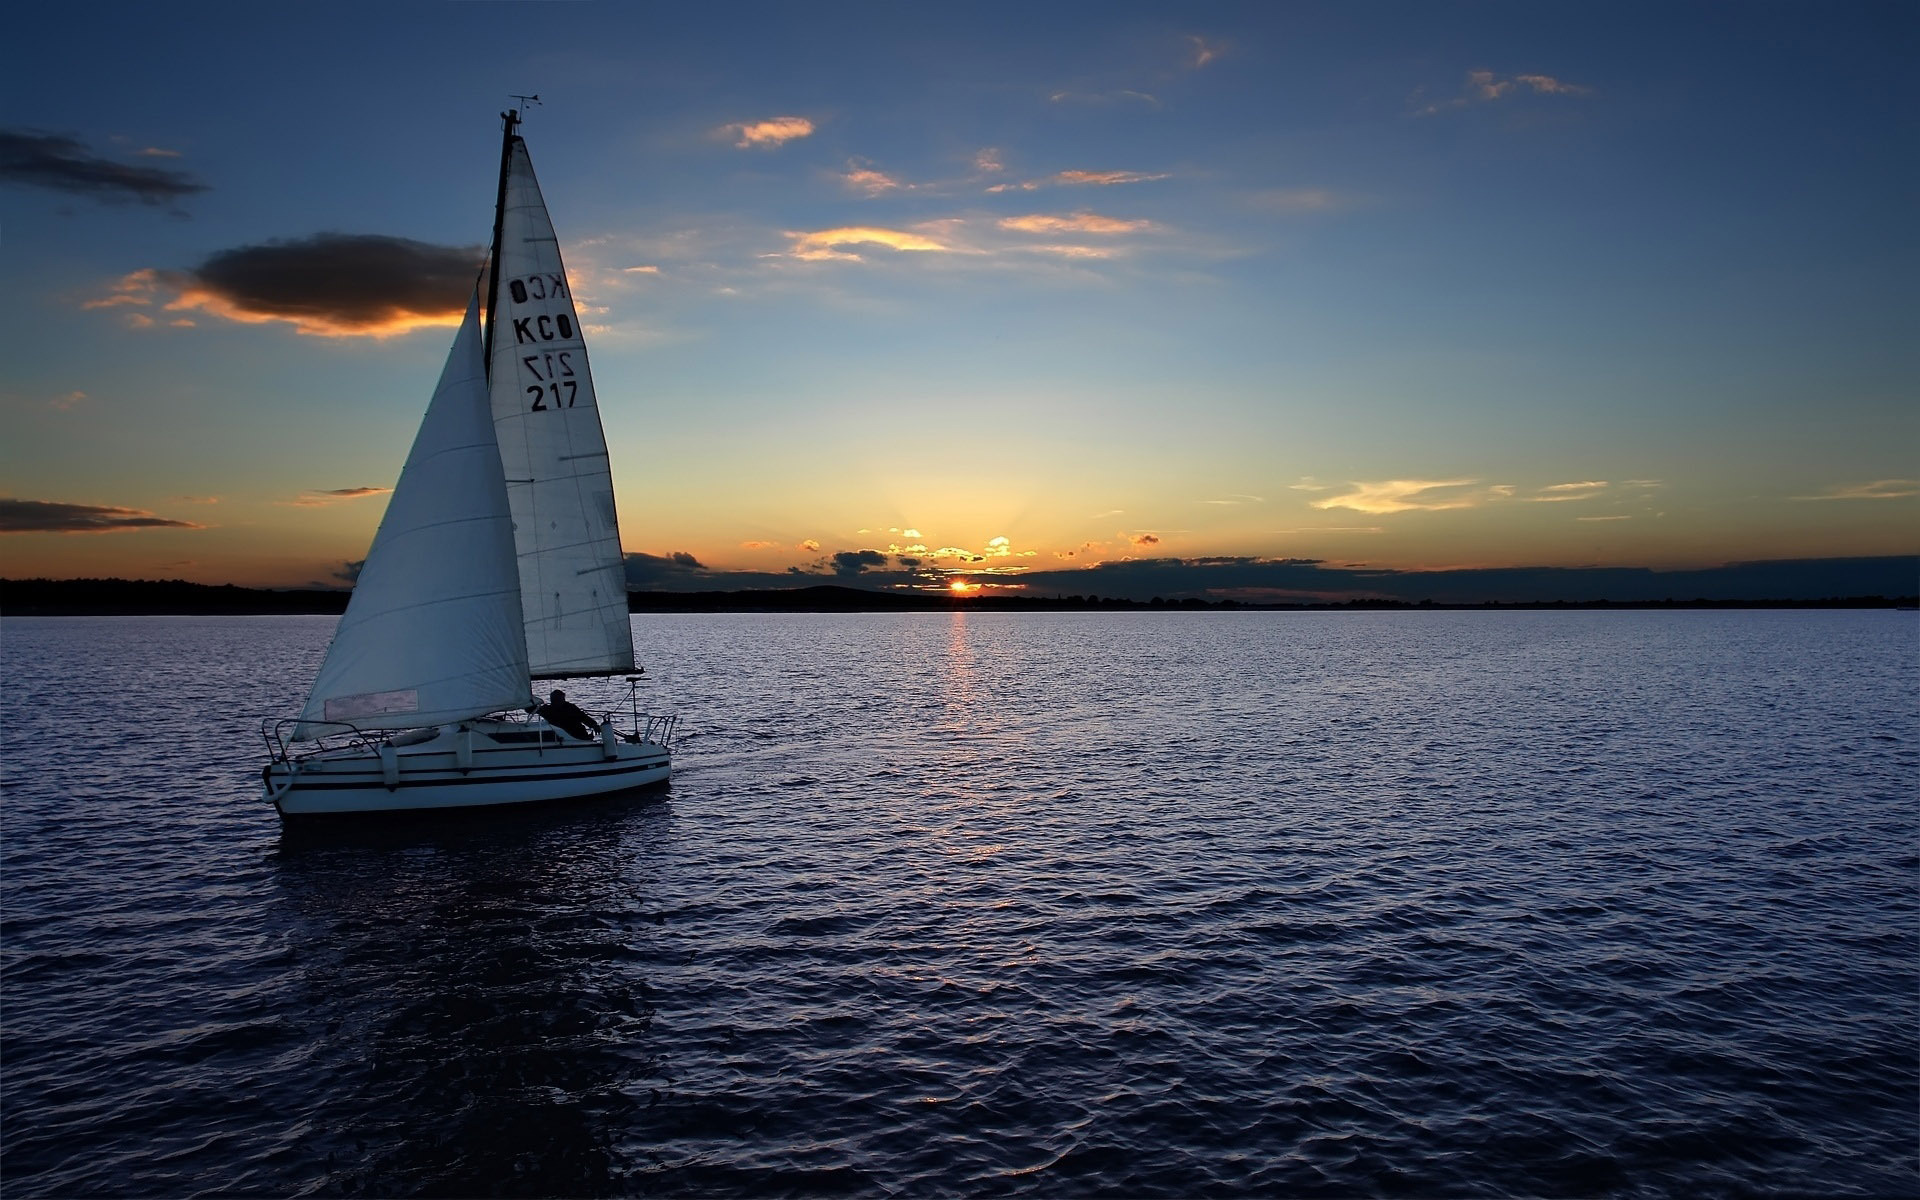 Download Sailboat Wallpaper 19802